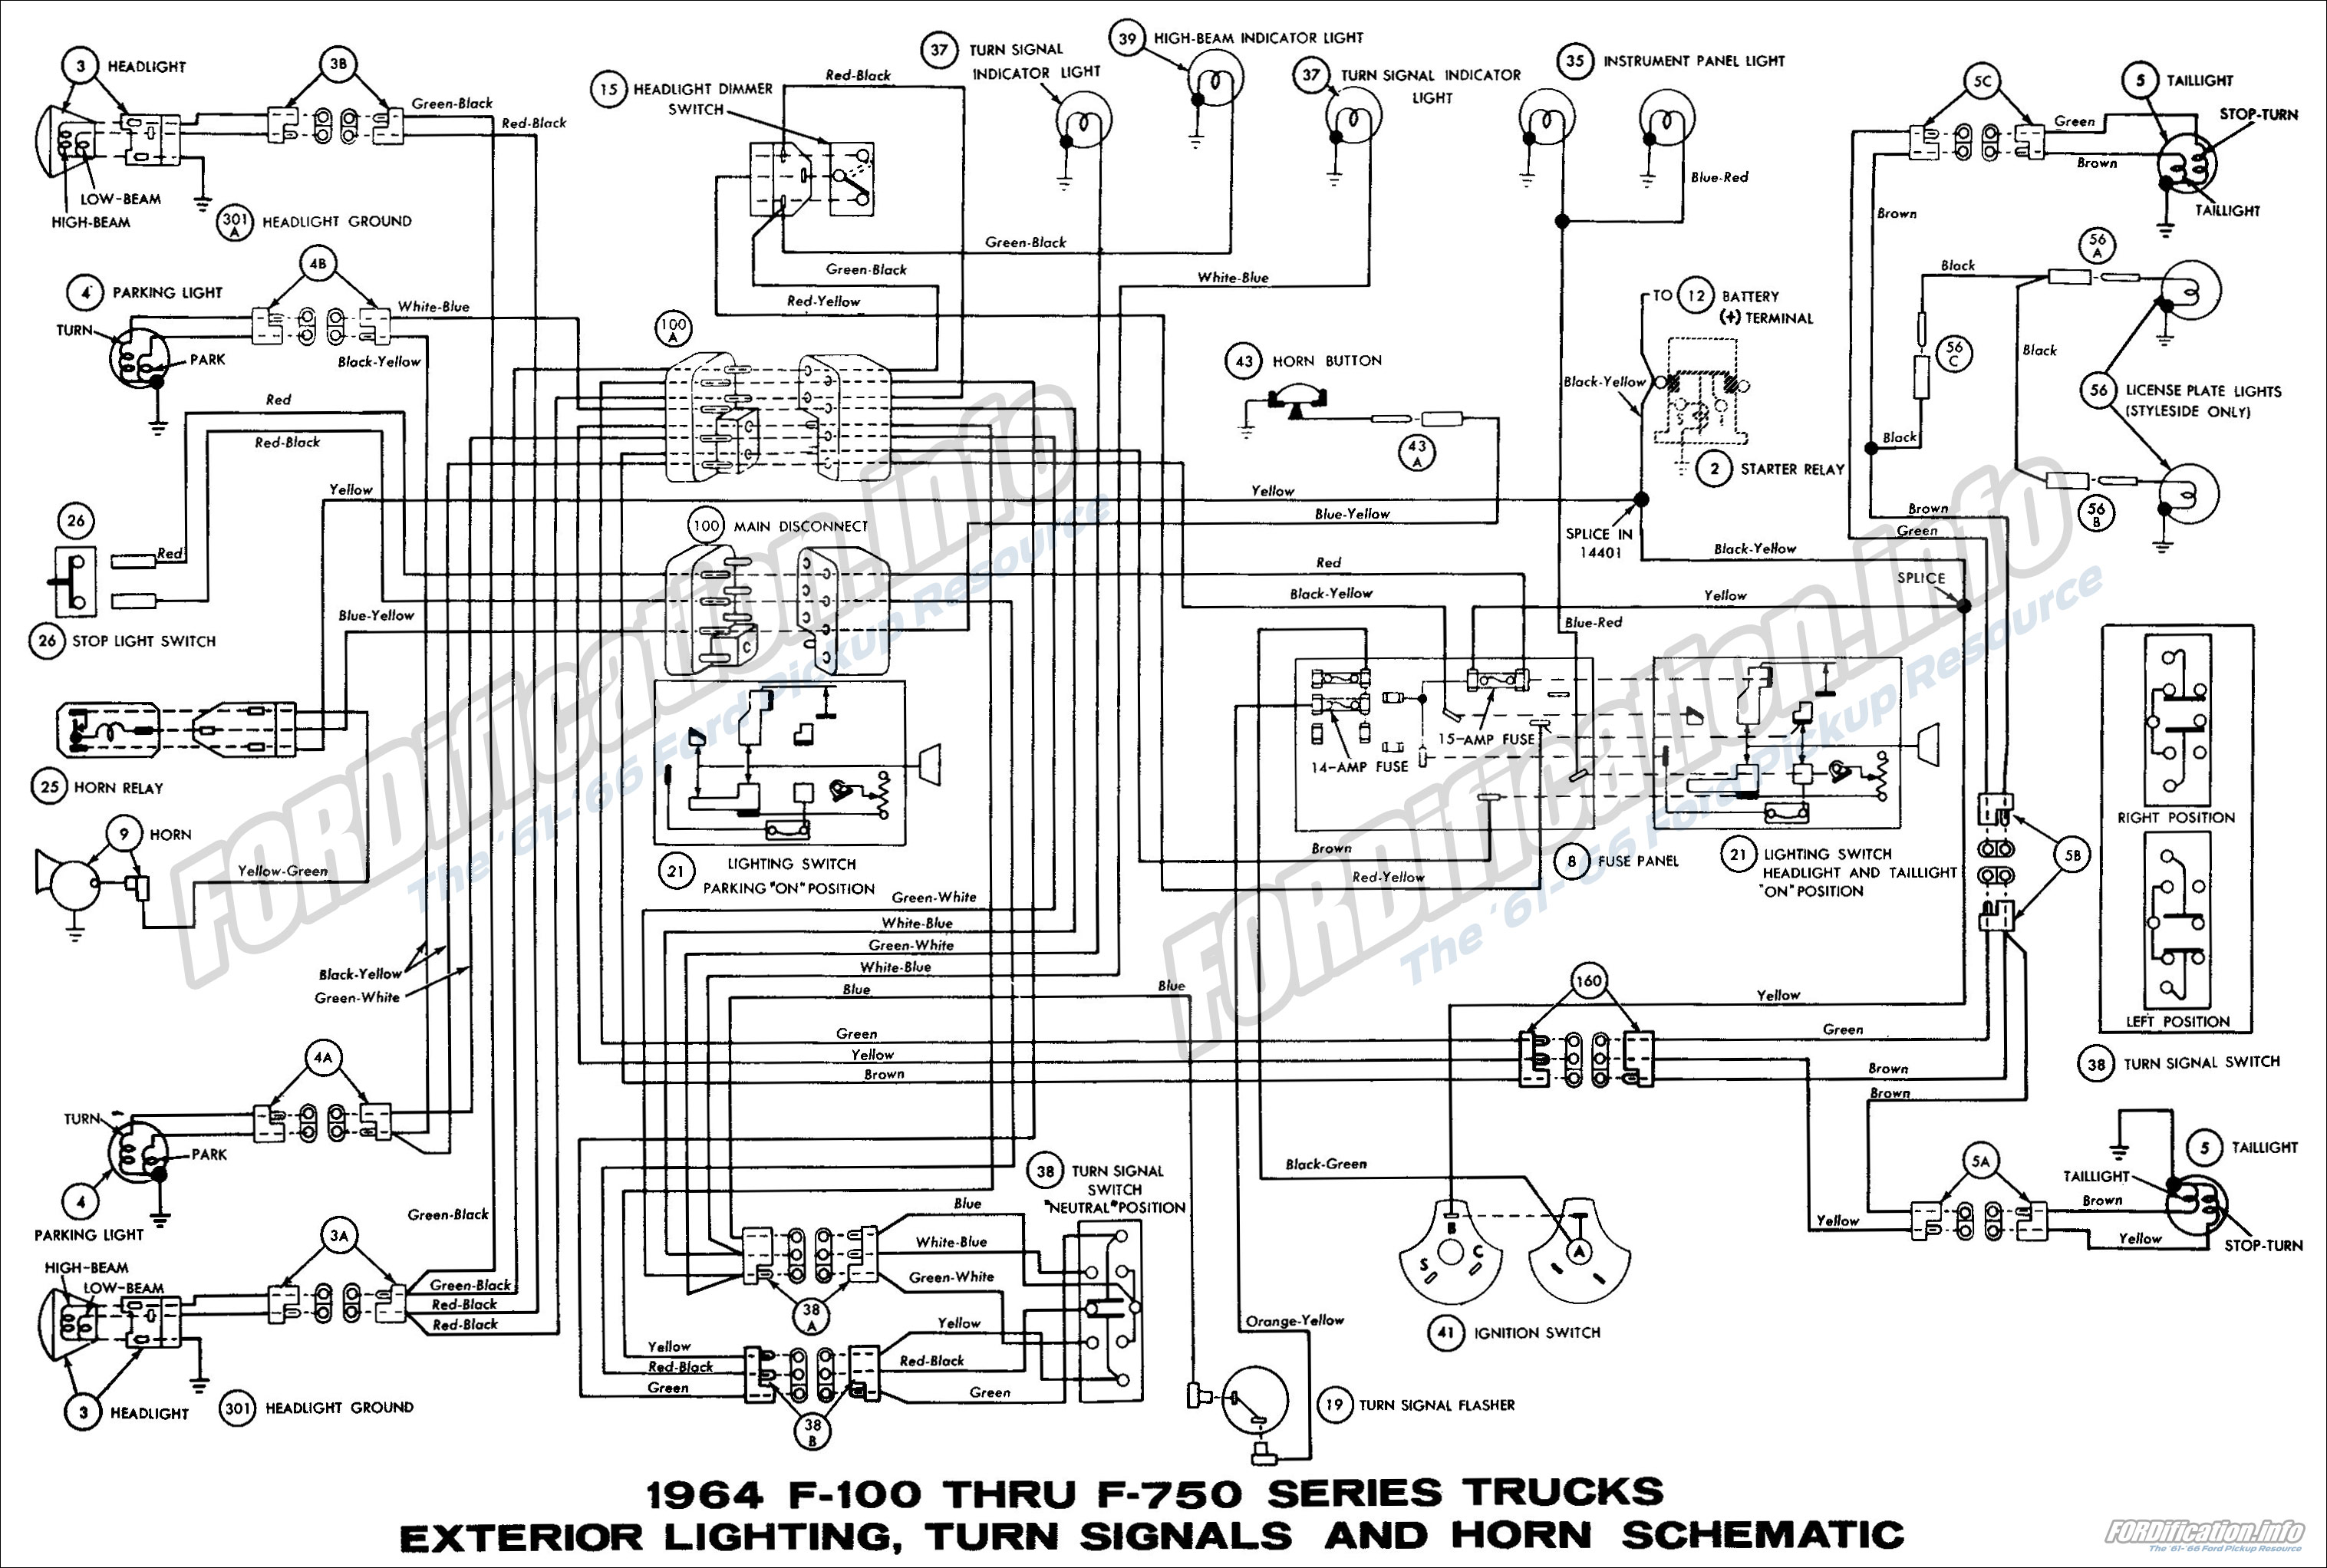 1964_09 1964 f100 wiring diagram 1965 f100 wiring diagram \u2022 free wiring fordification wiring diagram at virtualis.co